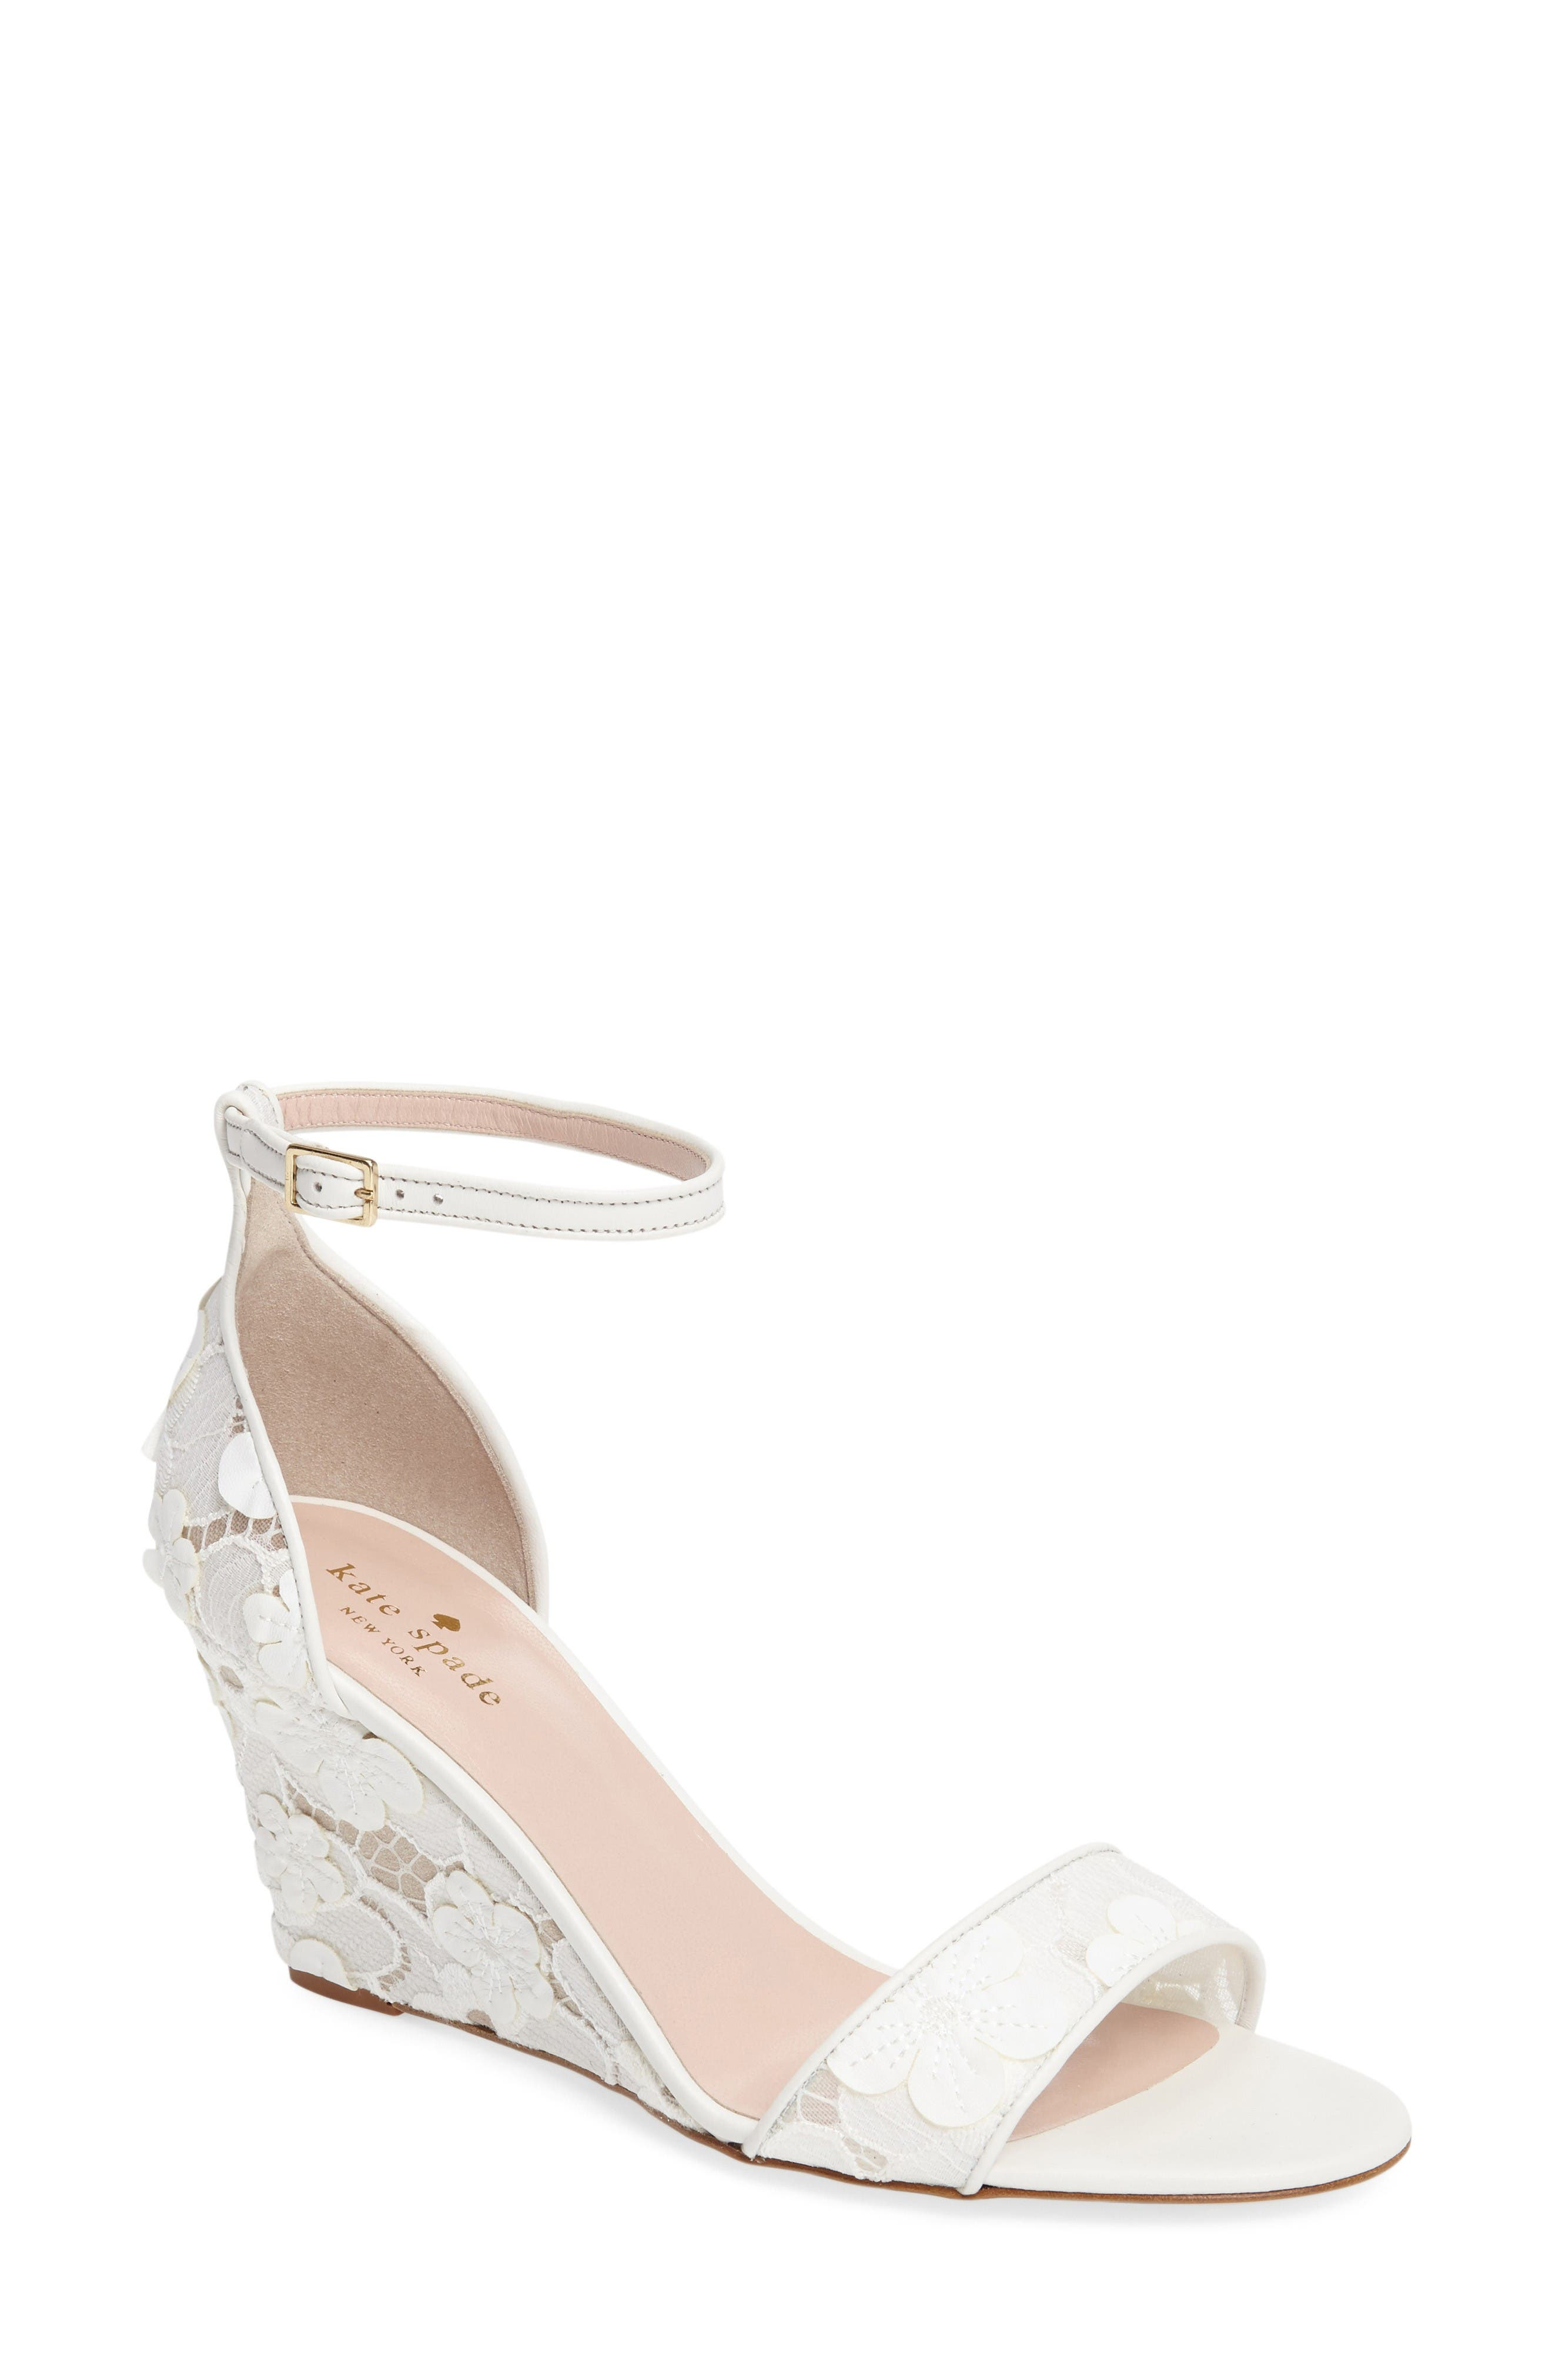 KATE SPADE NEW YORK roosevelt wedge sandal